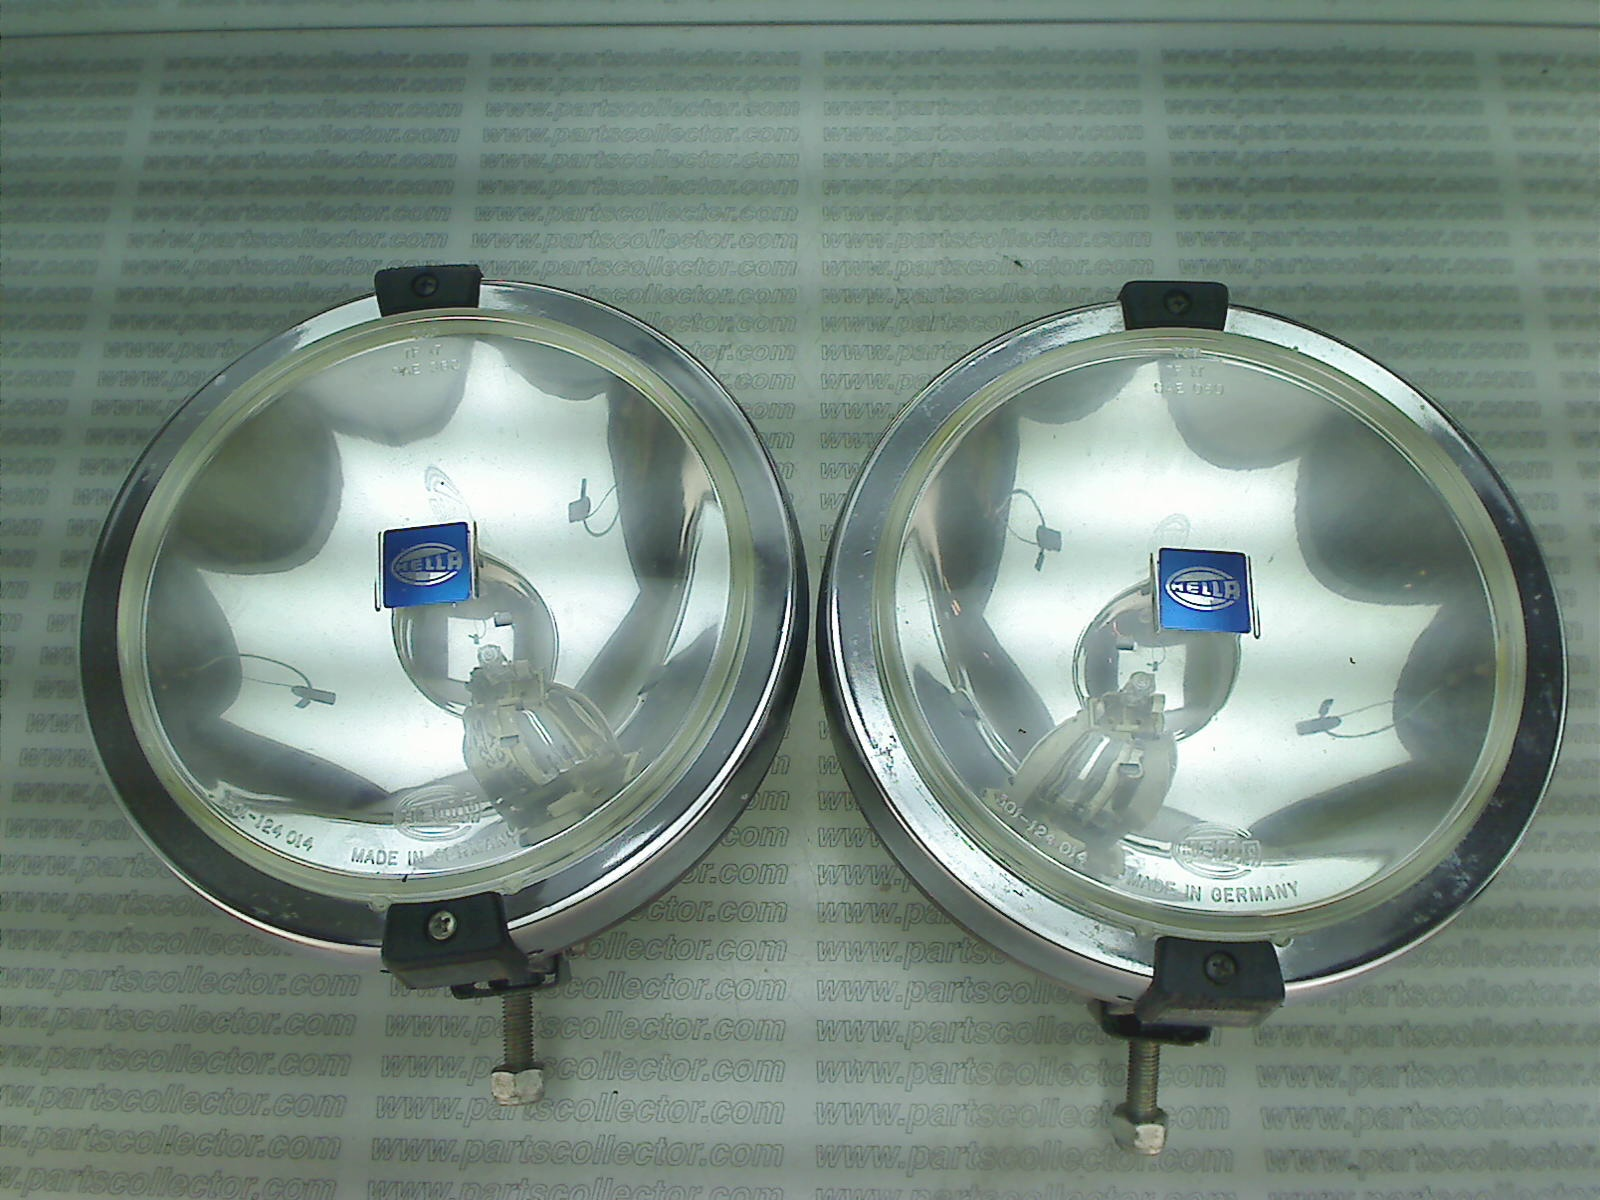 DEEP BEAM LAMPS